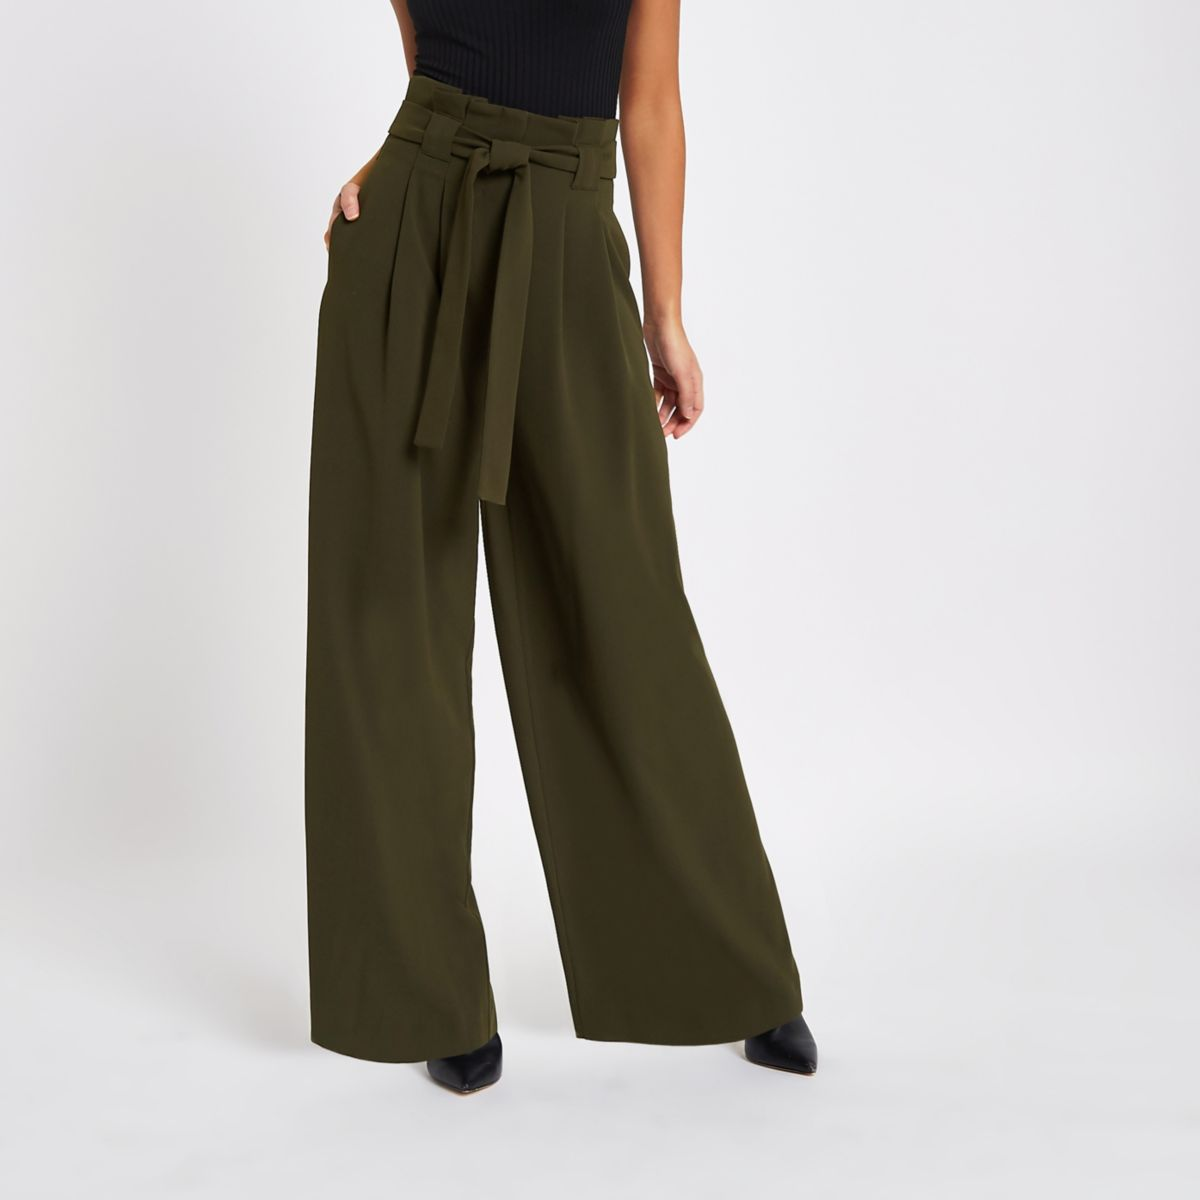 Linen-Blend Wide Leg Pants: Flattering wide contour waist; hook-and-bar closure. Classic rise sits at the waist. the tan/beige for a weekly volunteer position at a local children's medical clinic where the dress-code mandates long pants in either black or khaki. These are comfortable linen and can be machine washed!